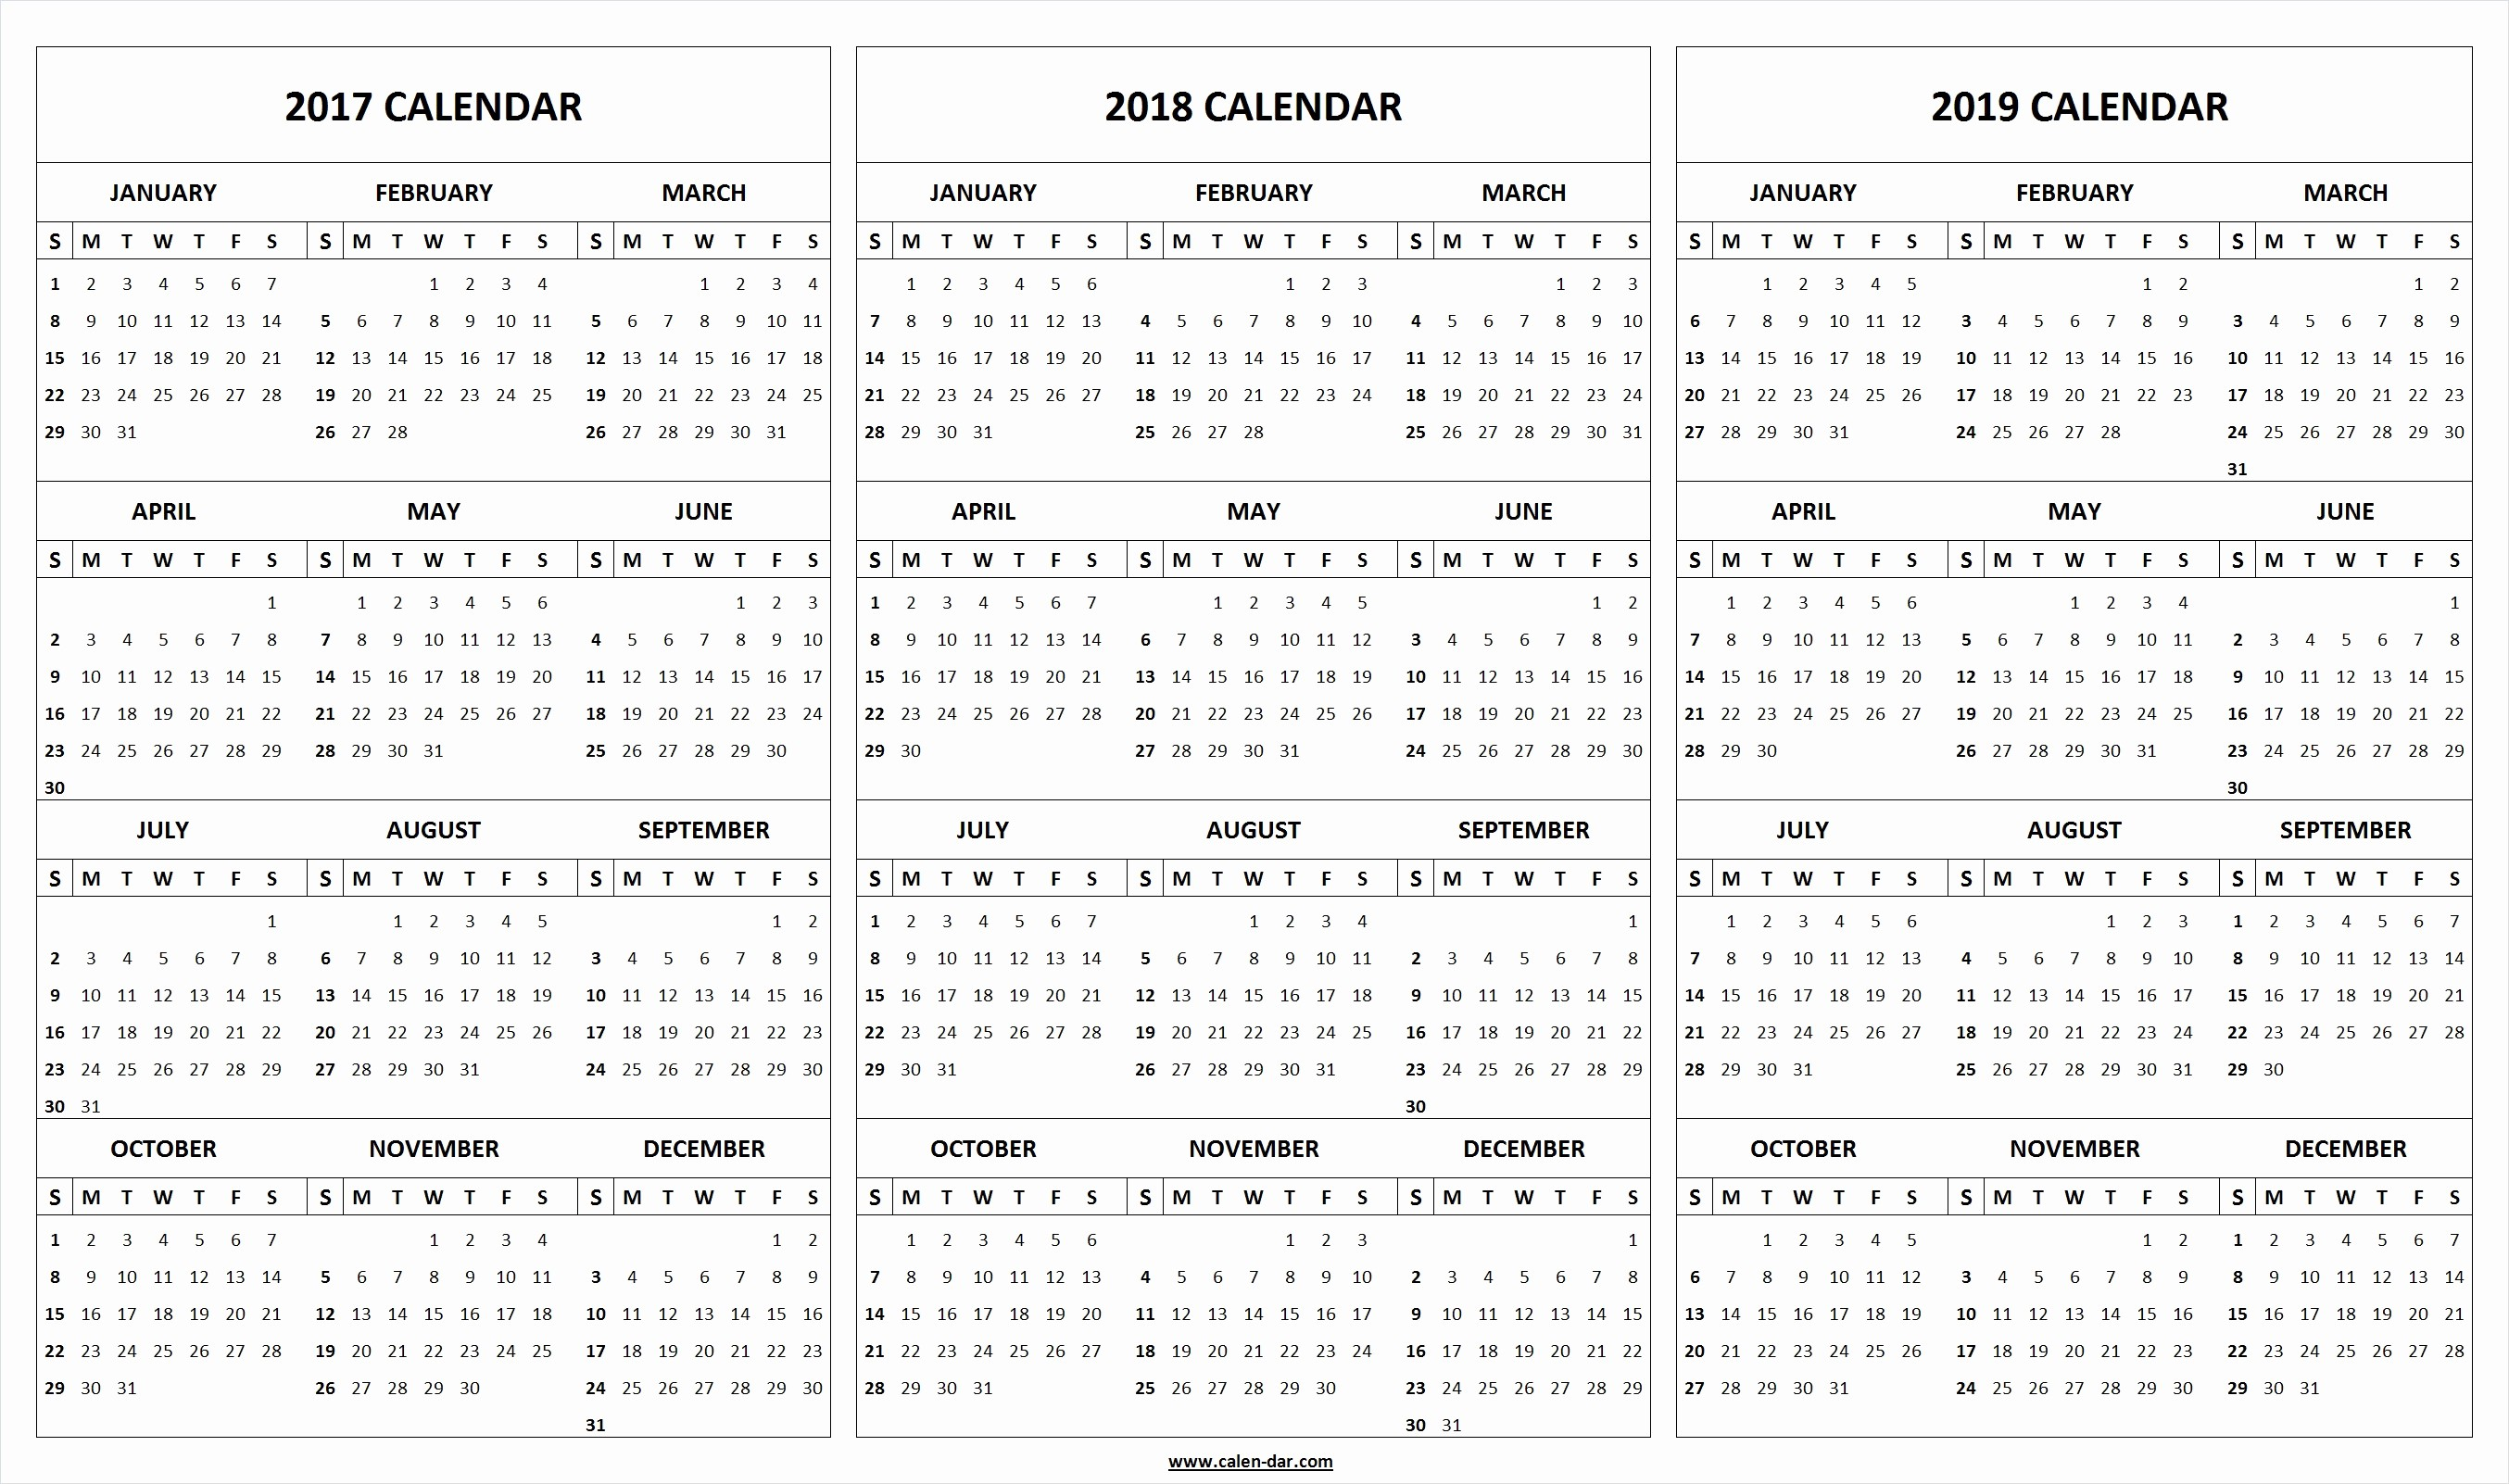 2017-2018 Printable Calendar Luxury Printable 3 Year Calendar 2017 to 2019 2017 2018 2019